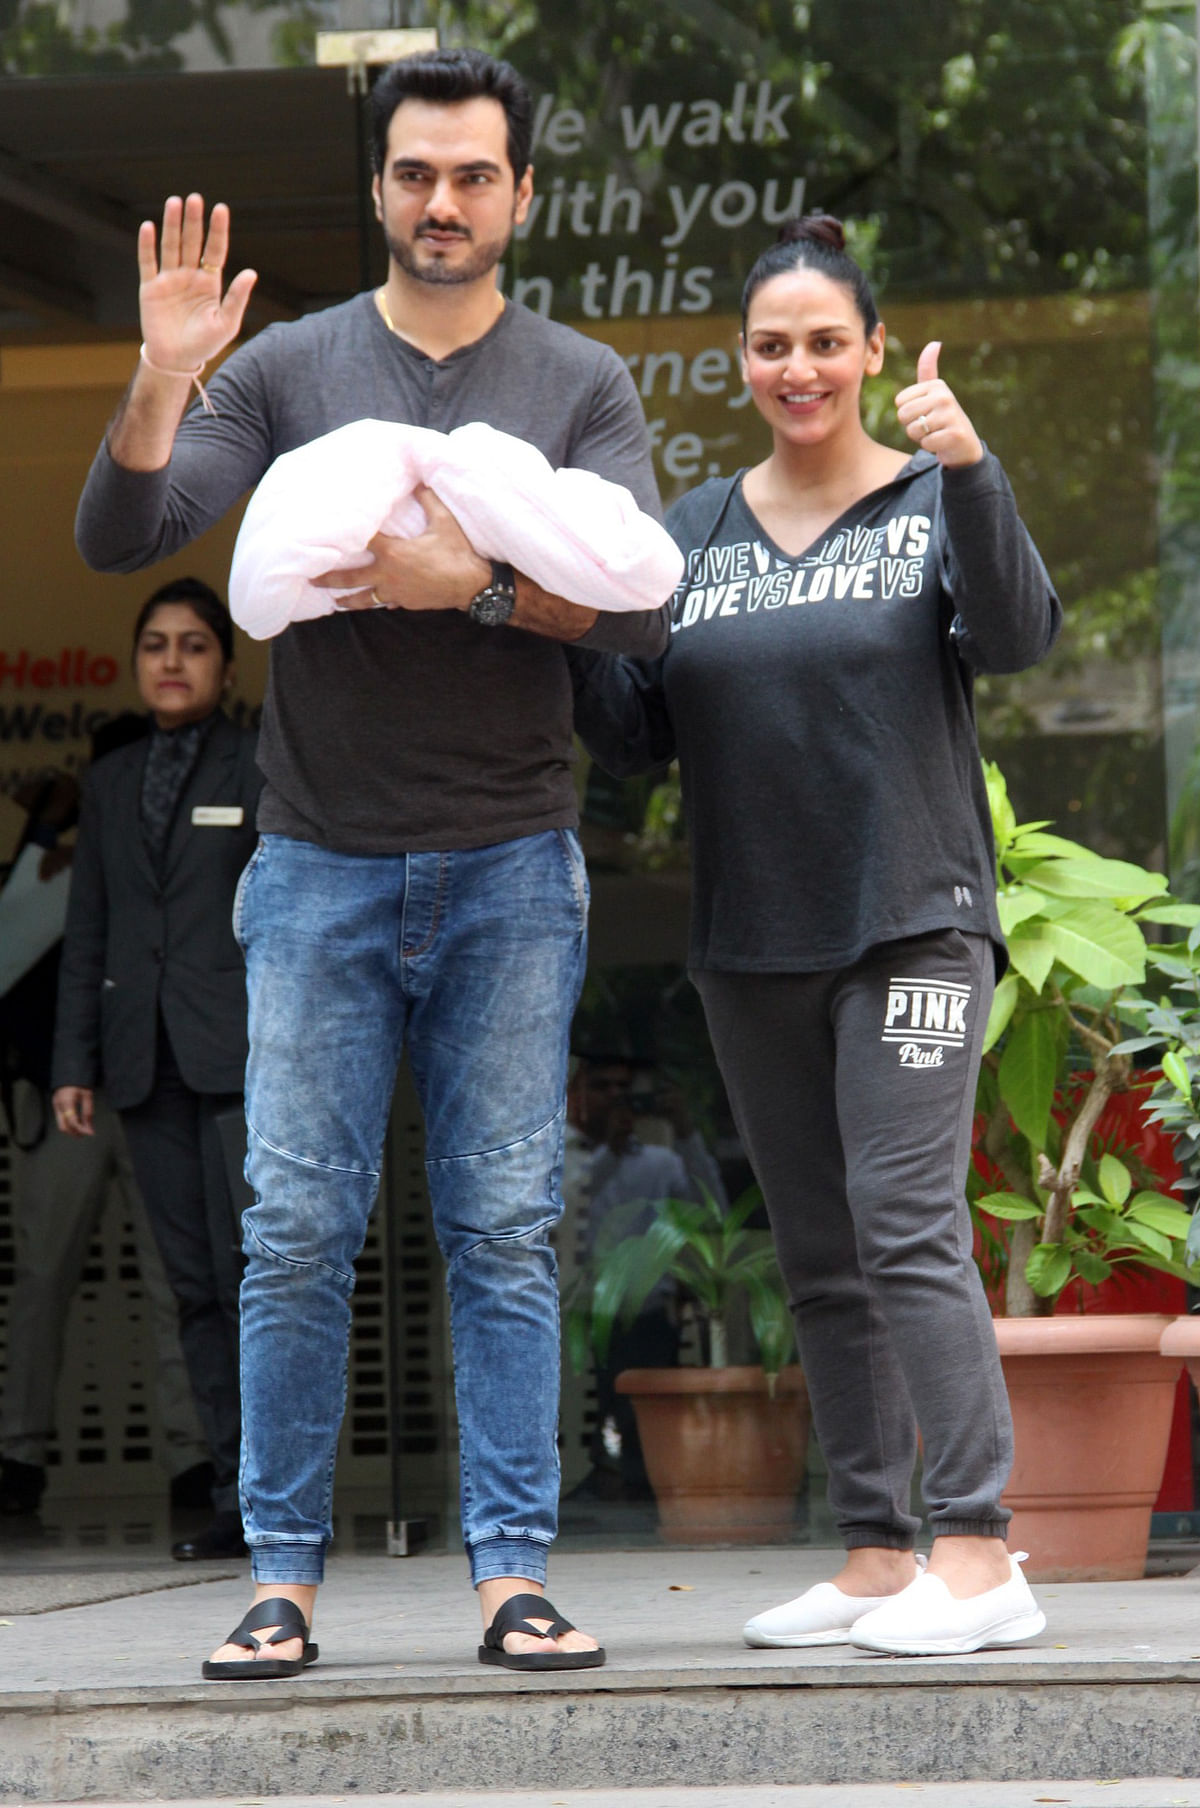 Esha Deol leaves the hospital with her newborn daughter and husband Bharat Takhtani.